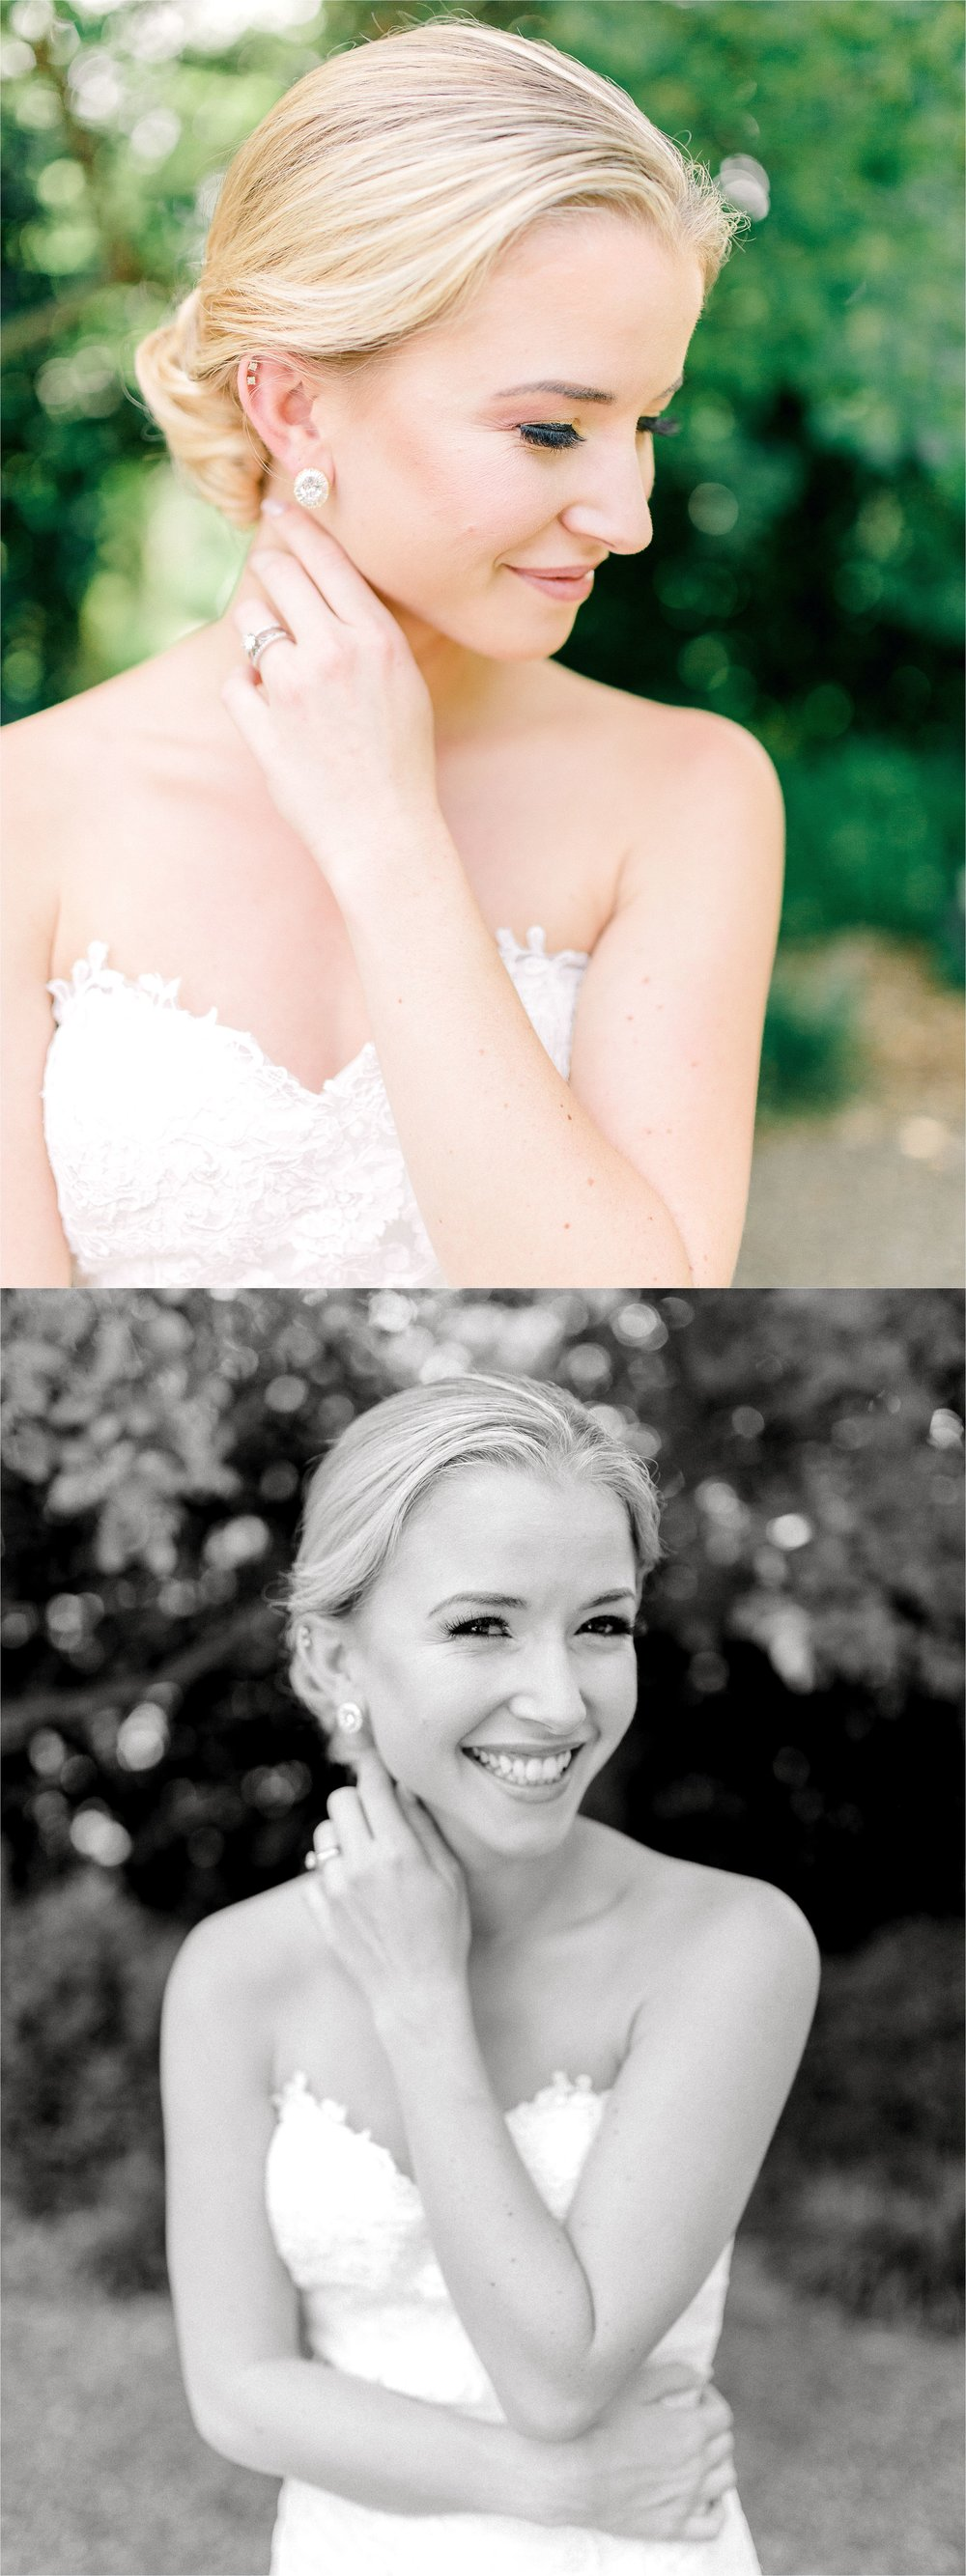 CHUALEEPHOTOGRAPHY_TEXASWEDDINGPHOTOGRAPHER_TEXASDISCOVERYGARDENS_0998.jpg